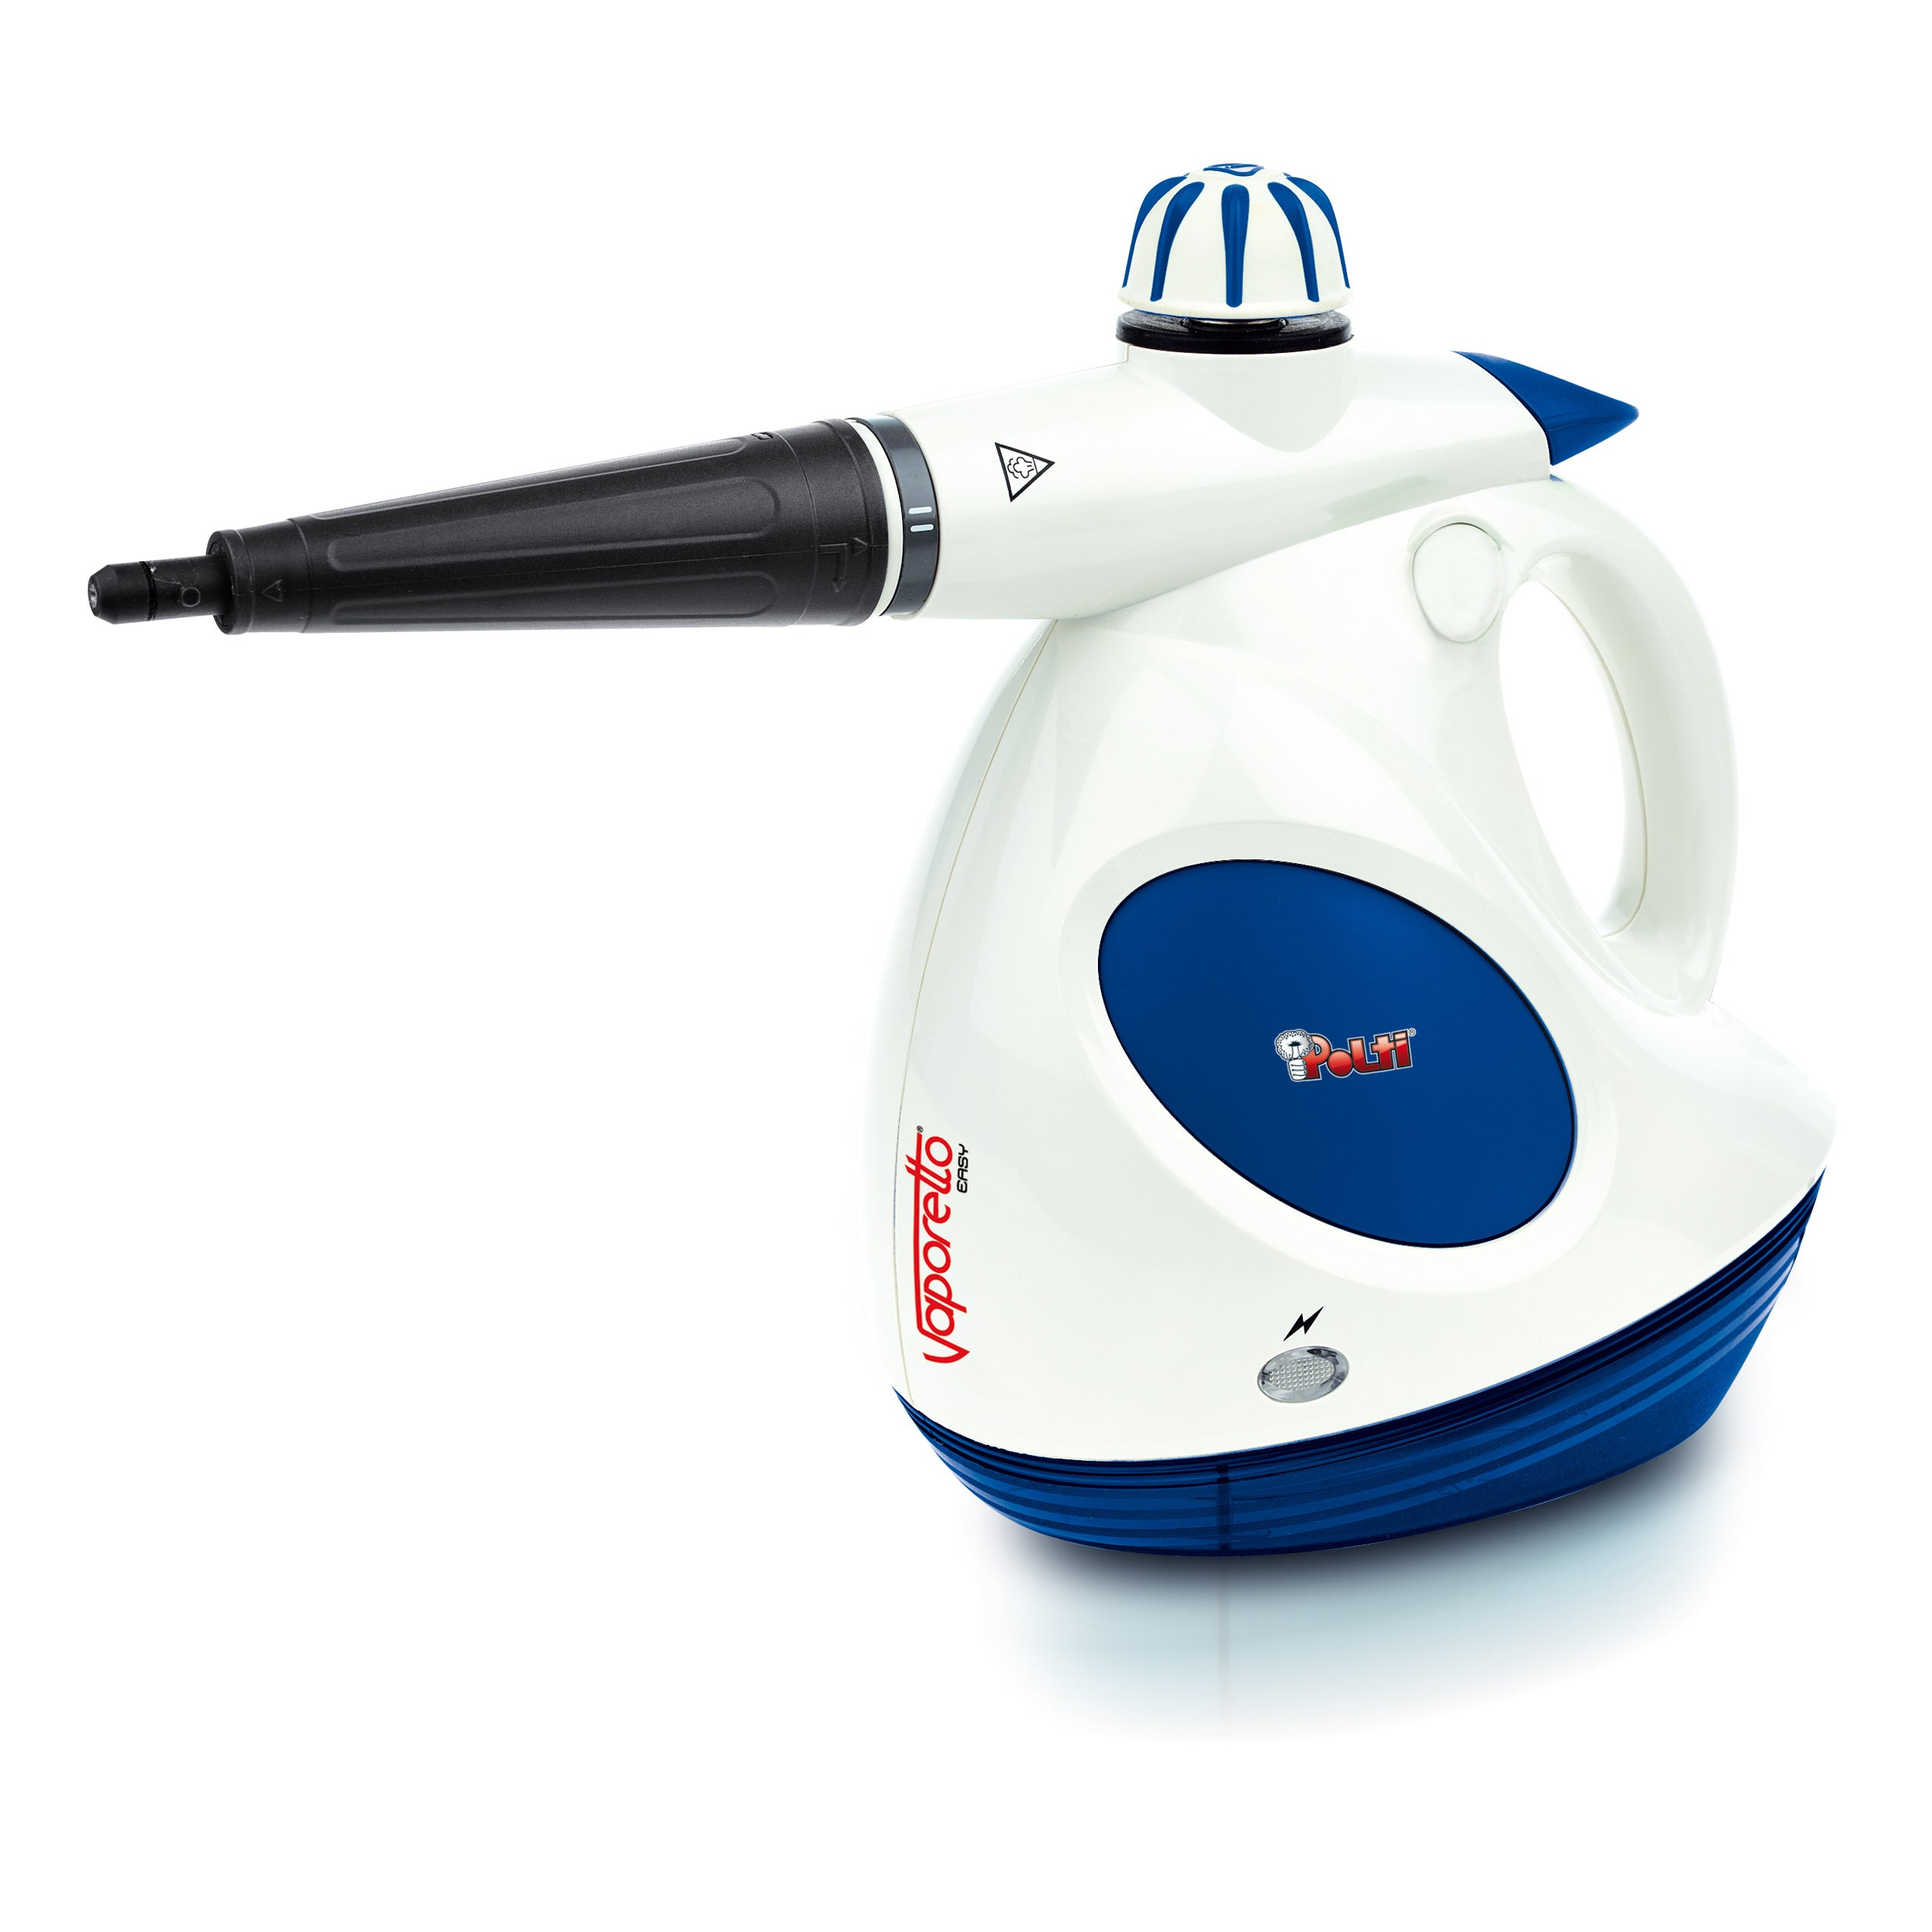 Polti Easy Hand Steamer at Sears.com